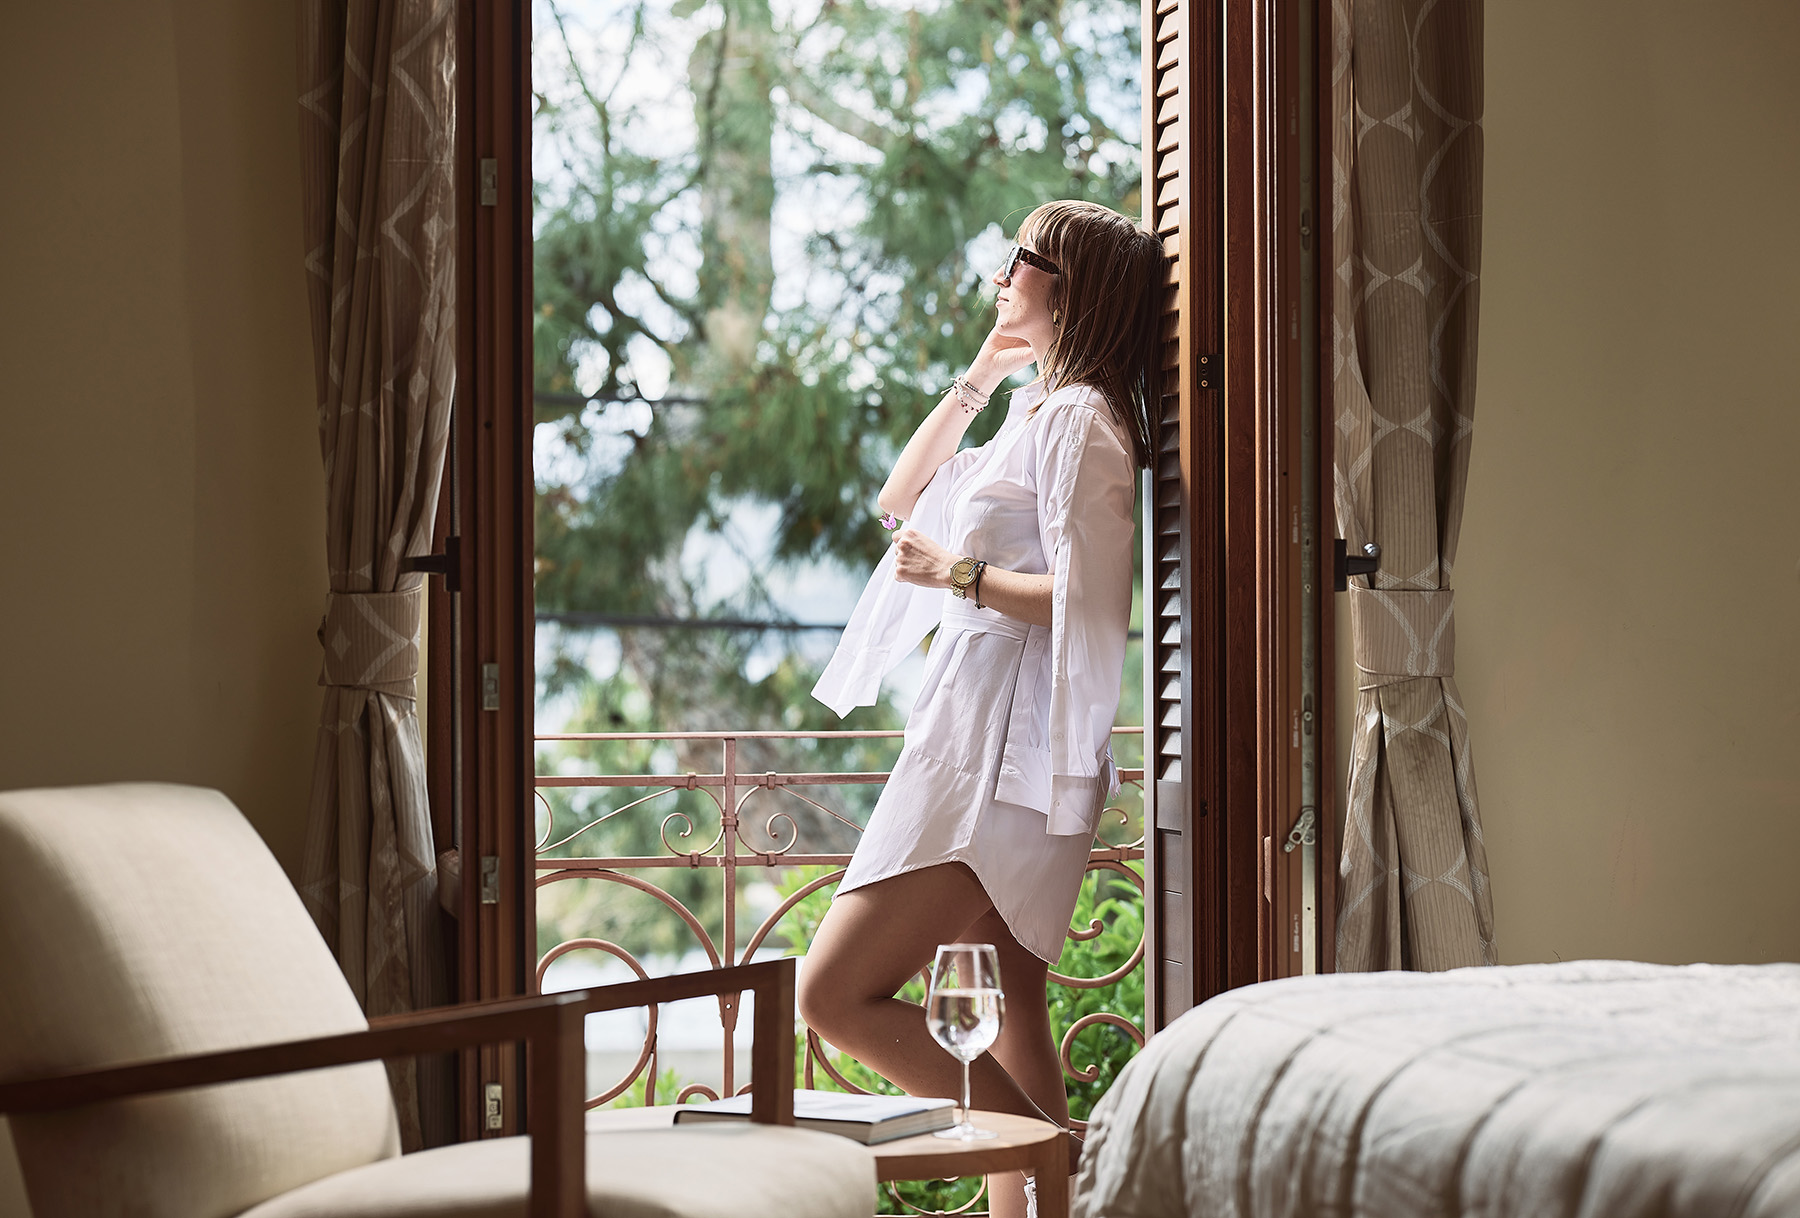 3. aktaion_hotel_edipsos_bedroom_balcony_view_girl_woman_staring_outside_calmness_relax_enjoy_hotelsevoia_booking